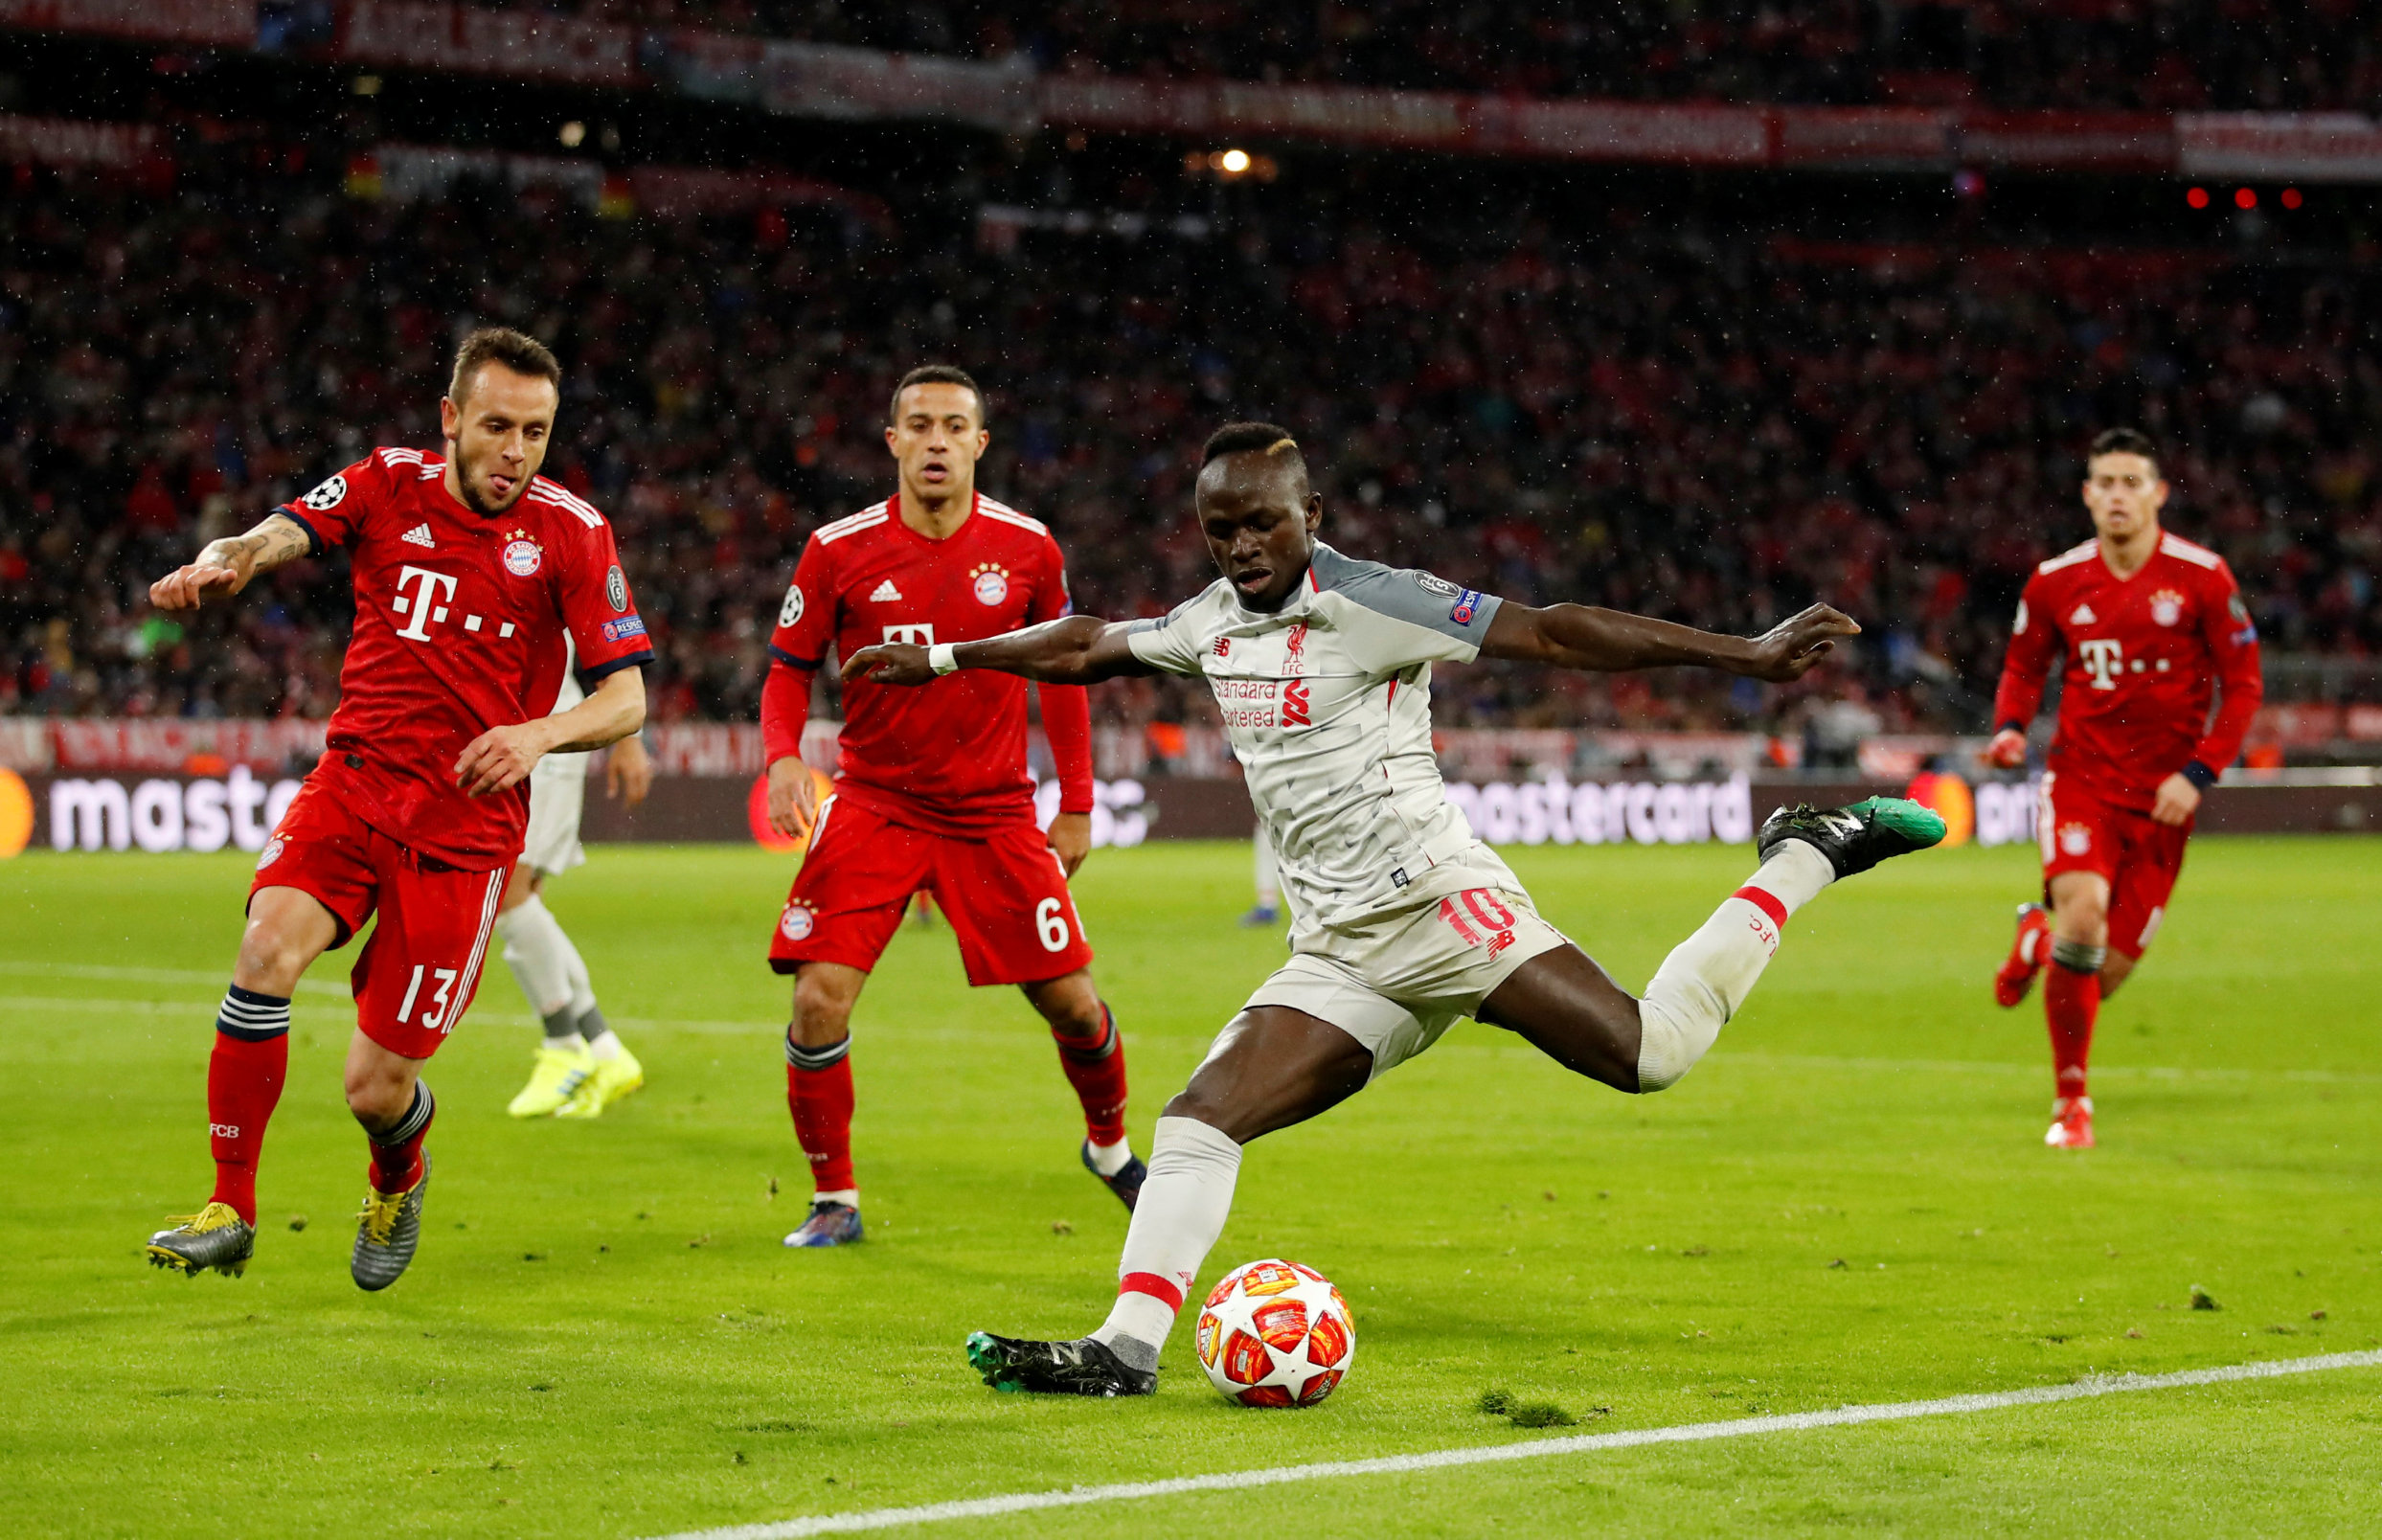 Soccer Football - Champions League - Round of 16 Second Leg - Bayern Munich v Liverpool - Allianz Arena, Munich, Germany - March 13, 2019  Liverpool's Sadio Mane in action with Bayern Munich's Rafinha and Thiago   Action Images via Reuters/Andrew Boyers